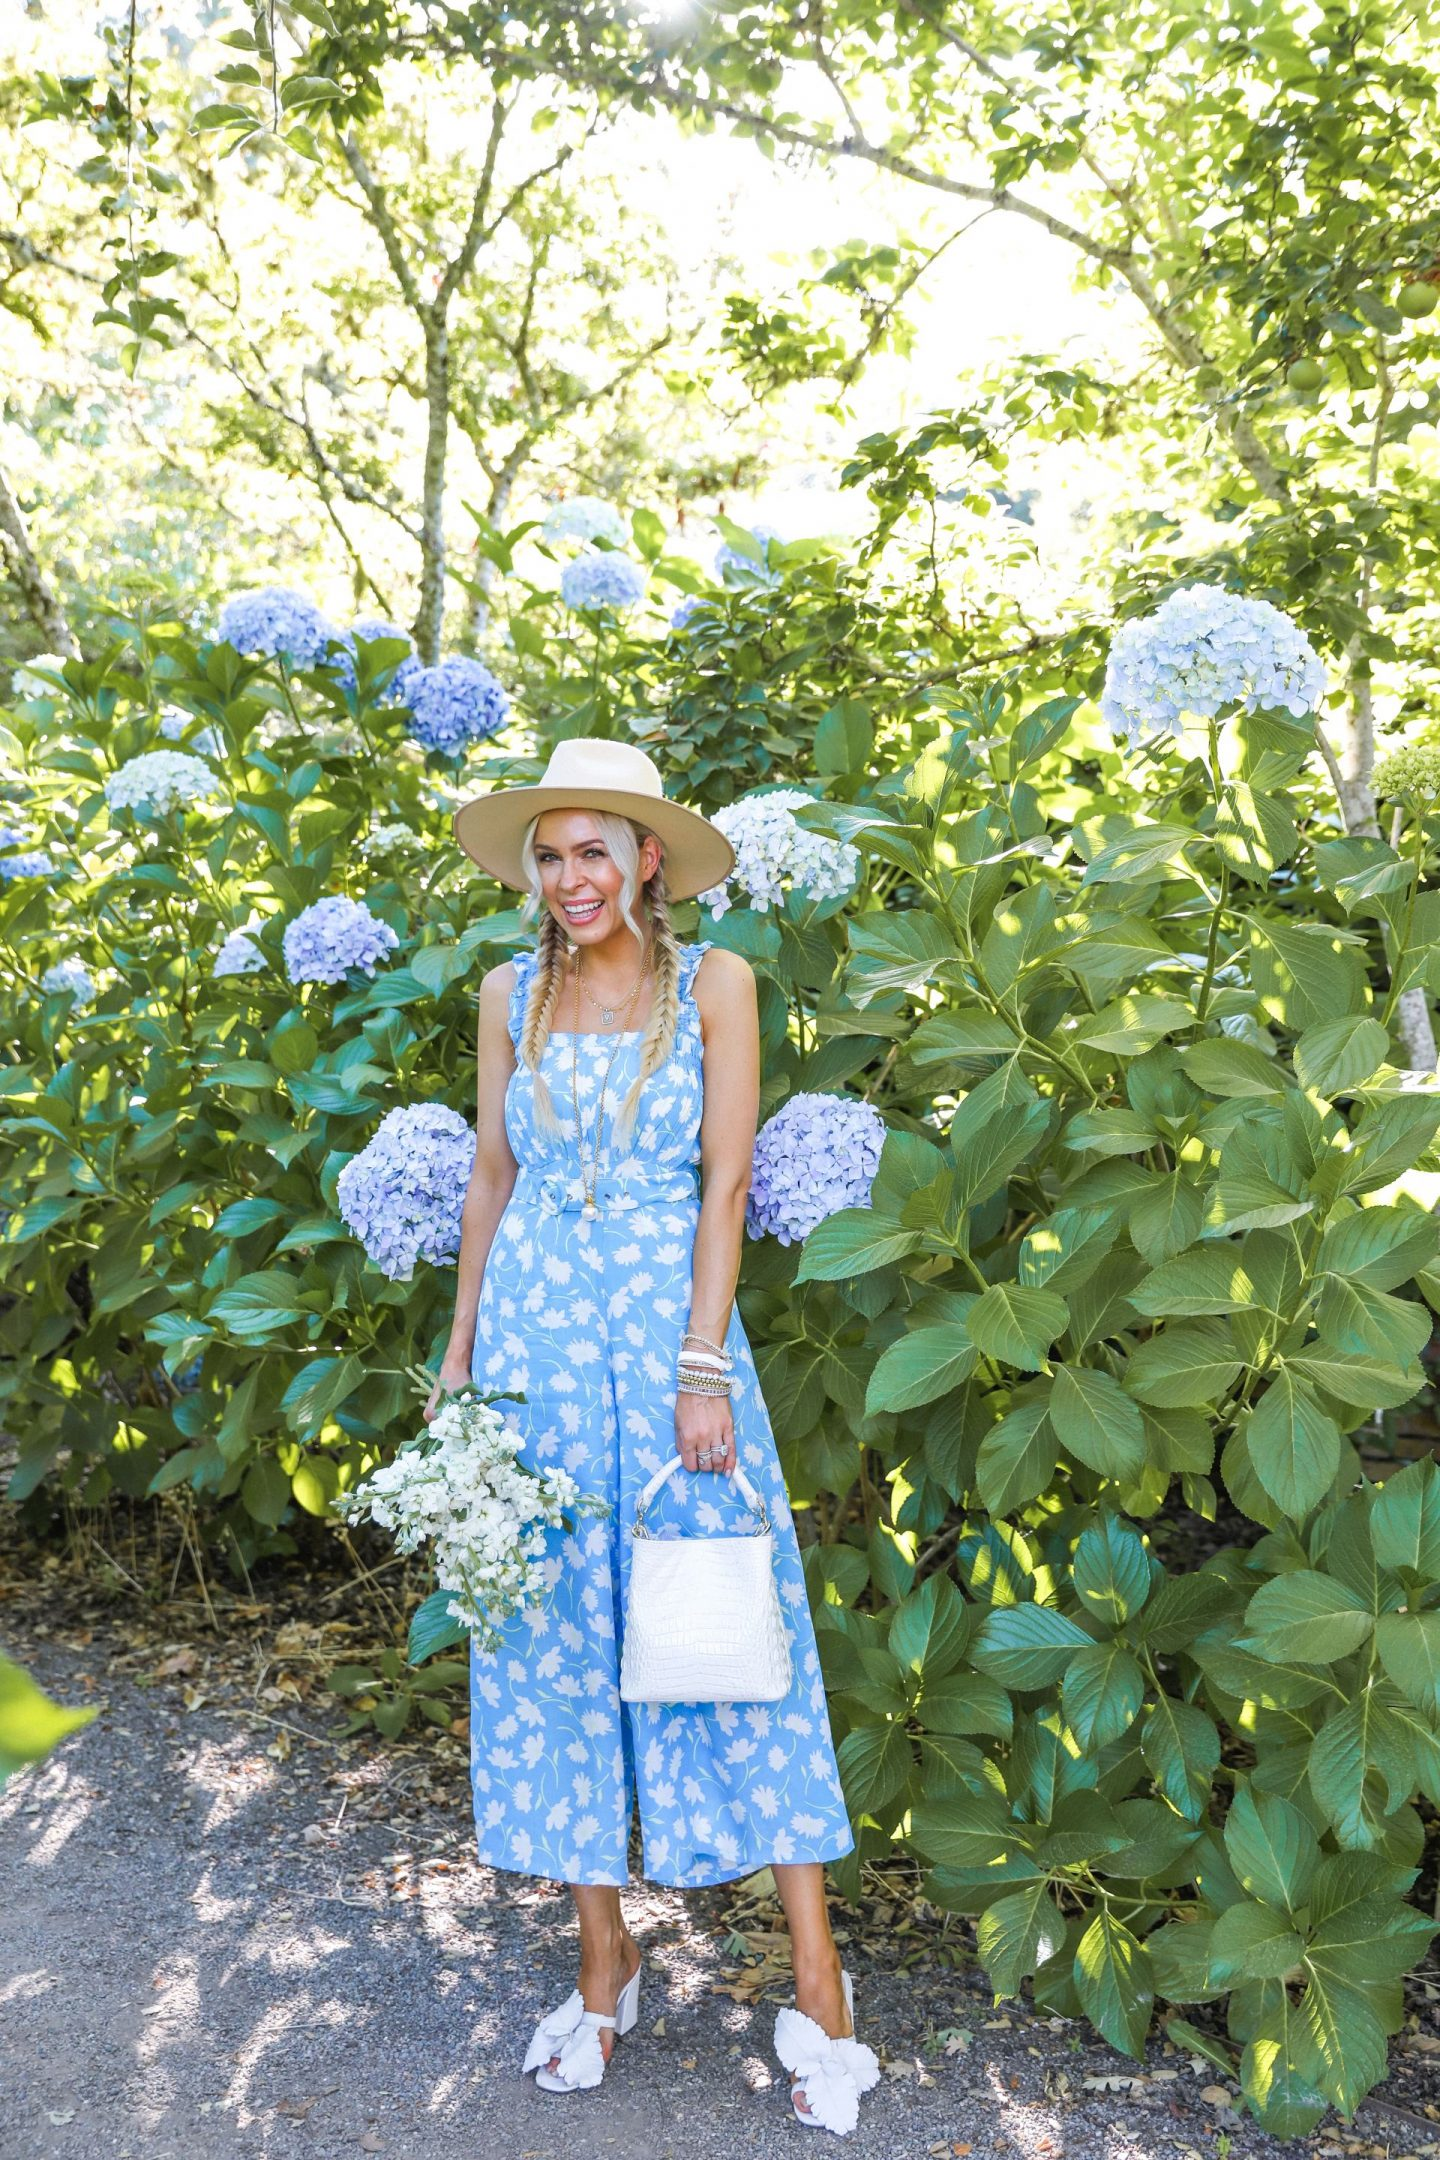 Favorite moments at Filoli Gardens. Faithful the brand jumpsuit shopbop in a hydrangea garden in Filoli, featured by San Francisco style blogger Lombard and Fifth.